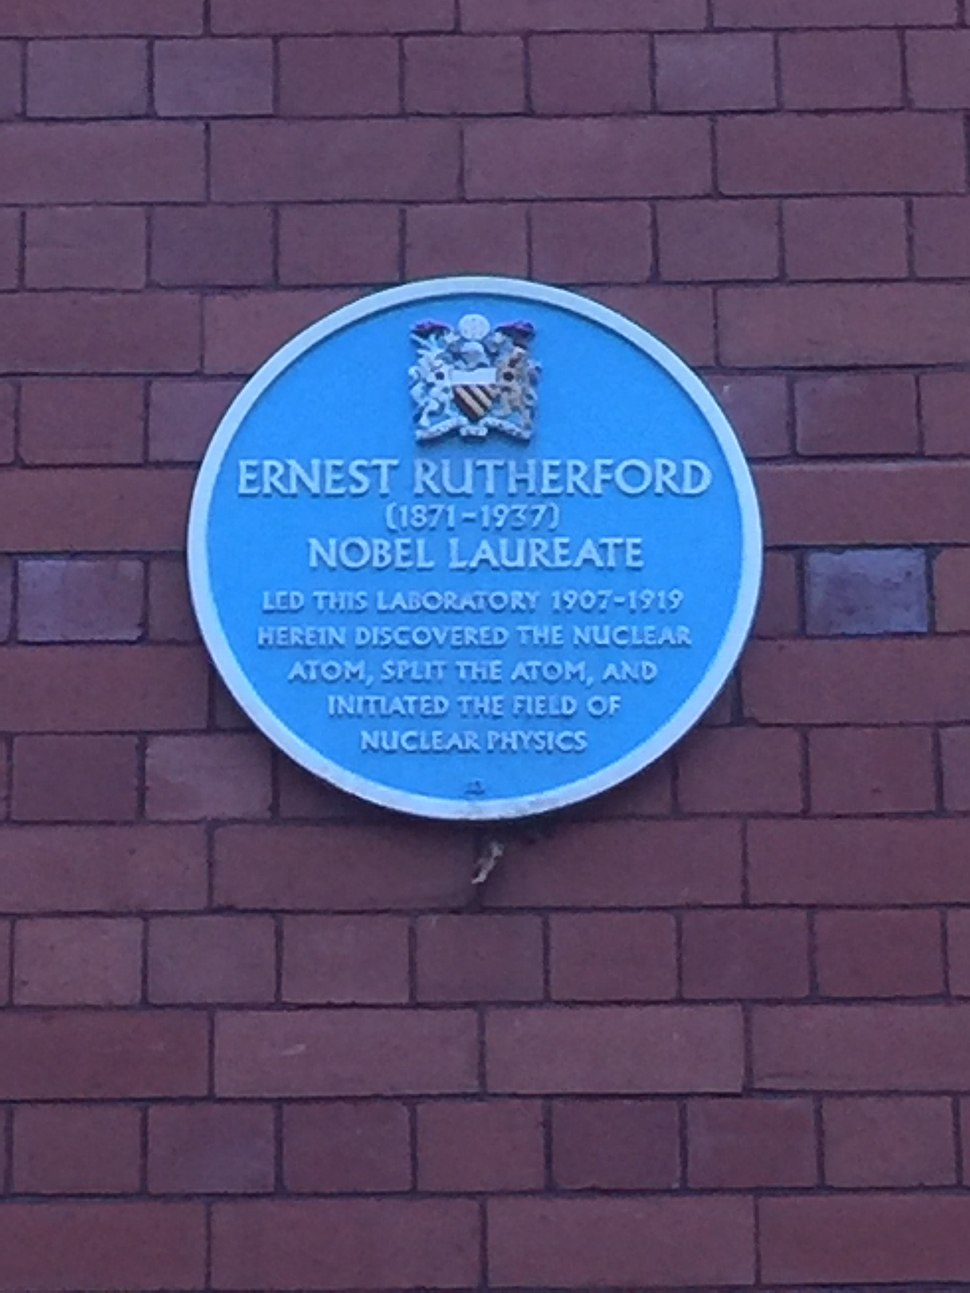 Sir Ernest Rutherford - Plaque at the University of Manchester